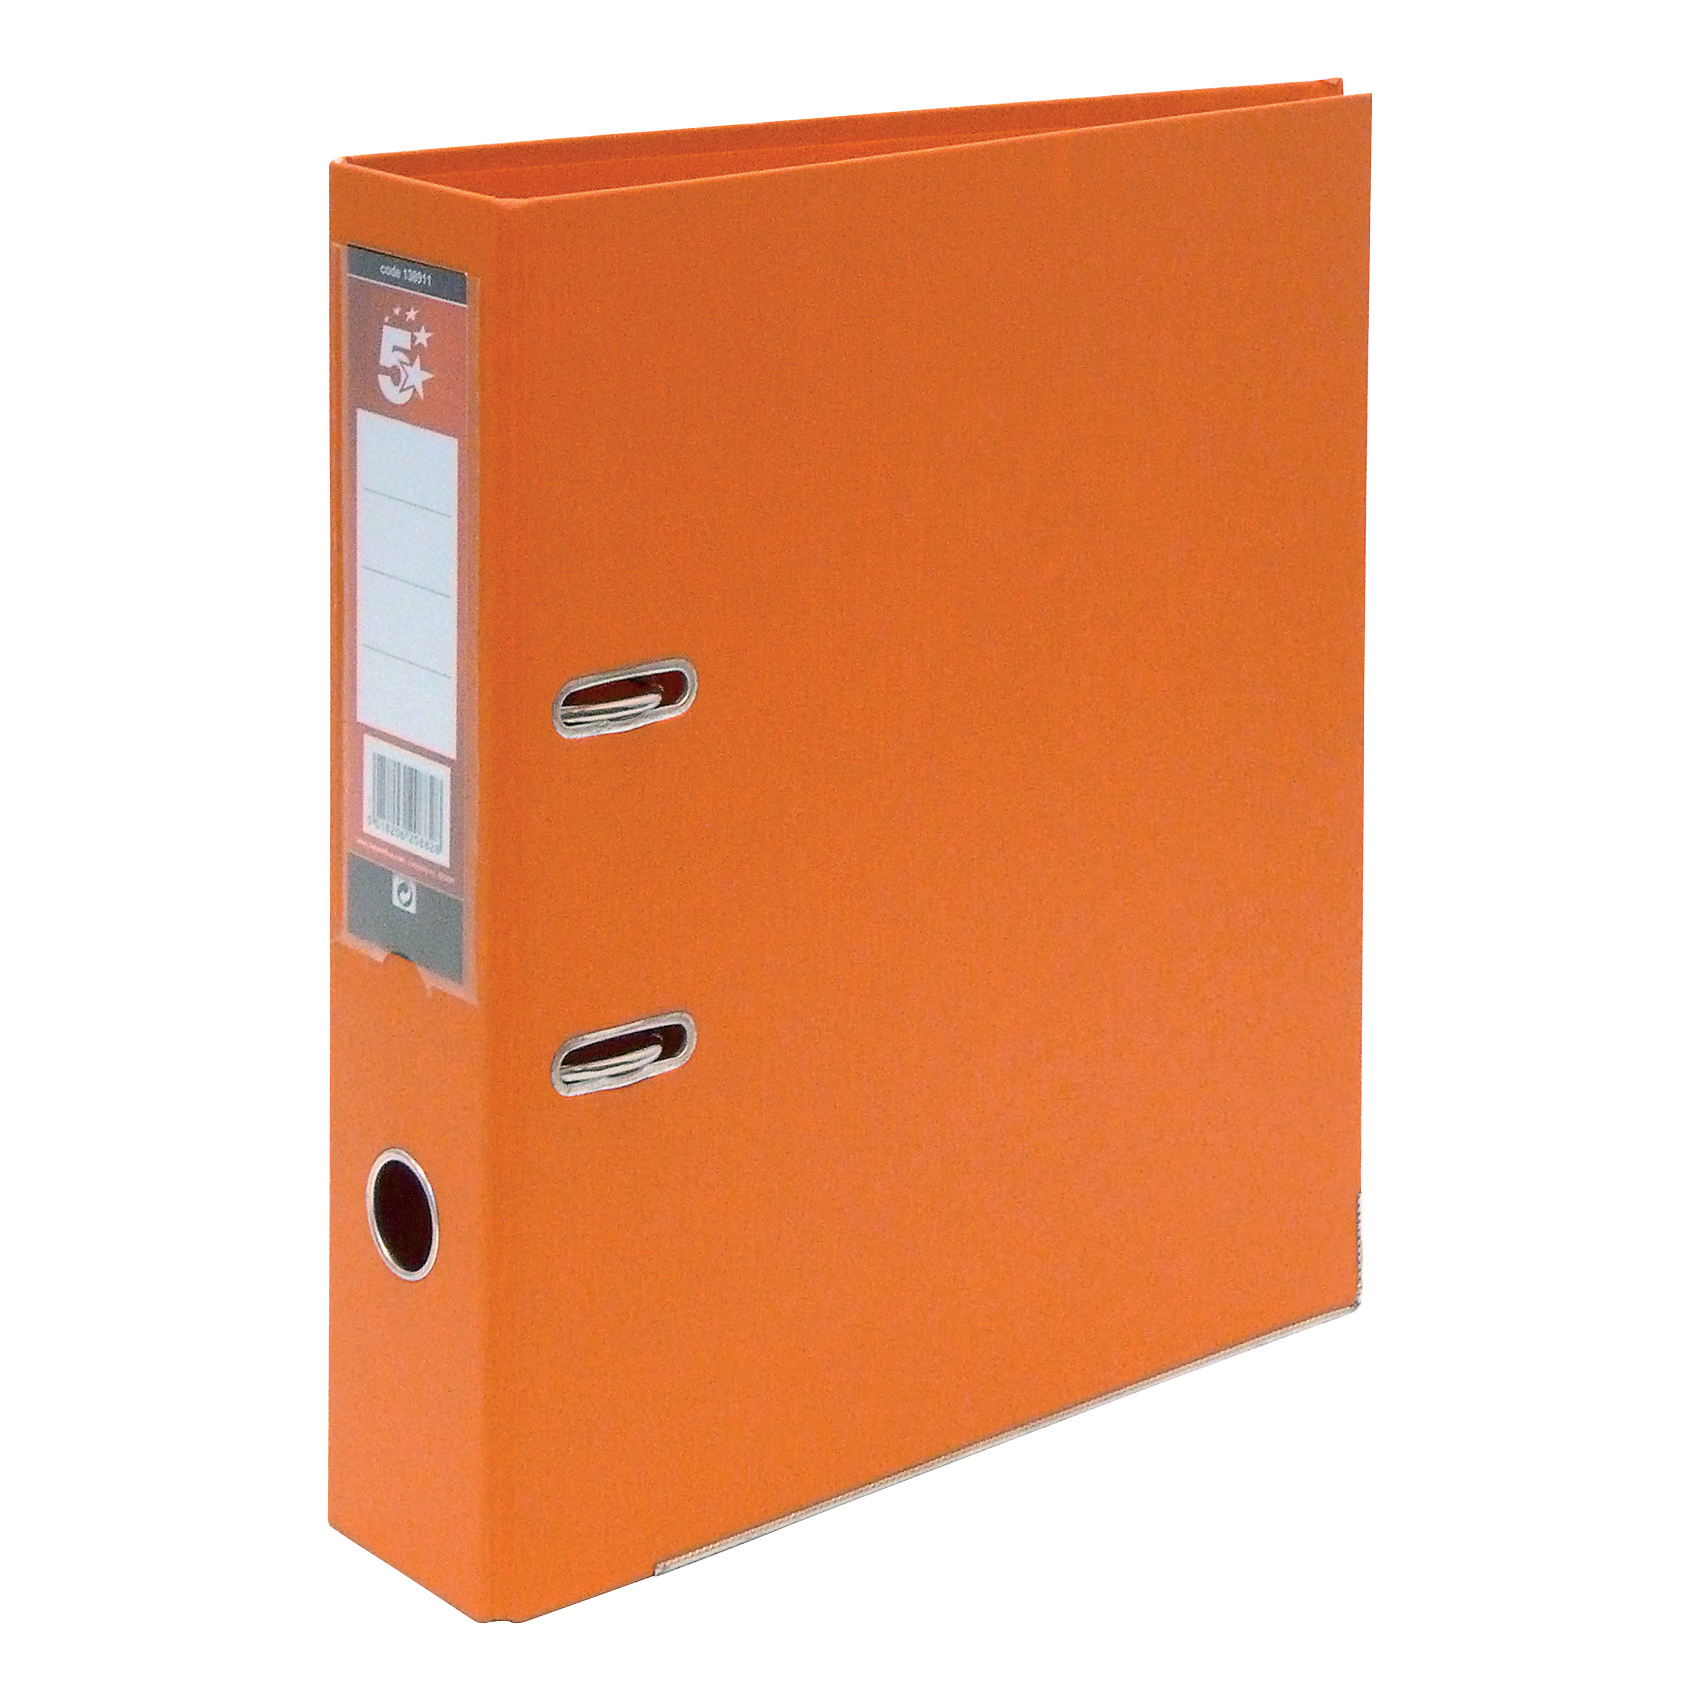 5 Star Plastic L/ File A4 Orange